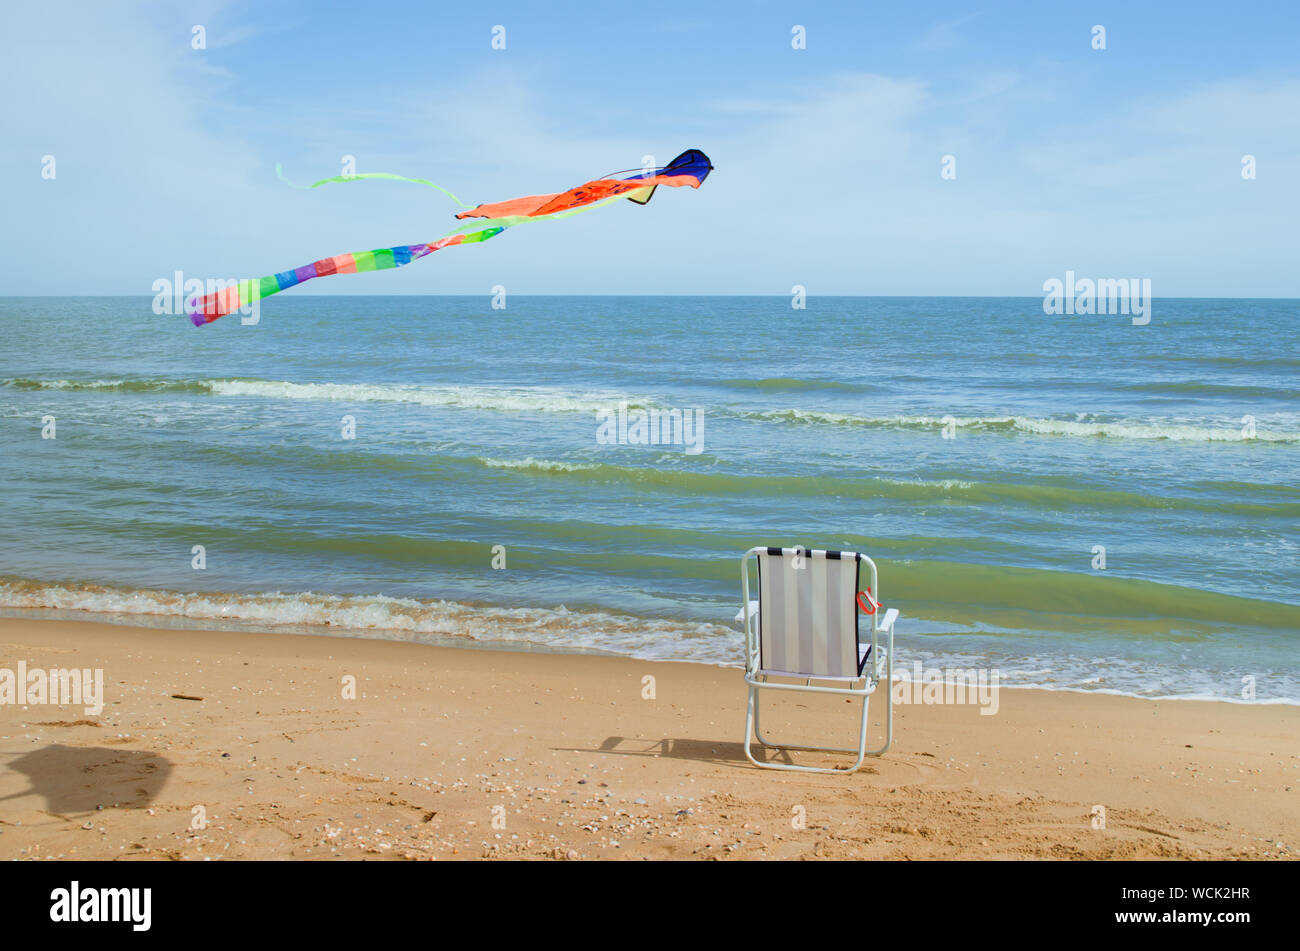 Sensational Kite Flying Over Folding Chair At Beach Stock Photo Squirreltailoven Fun Painted Chair Ideas Images Squirreltailovenorg